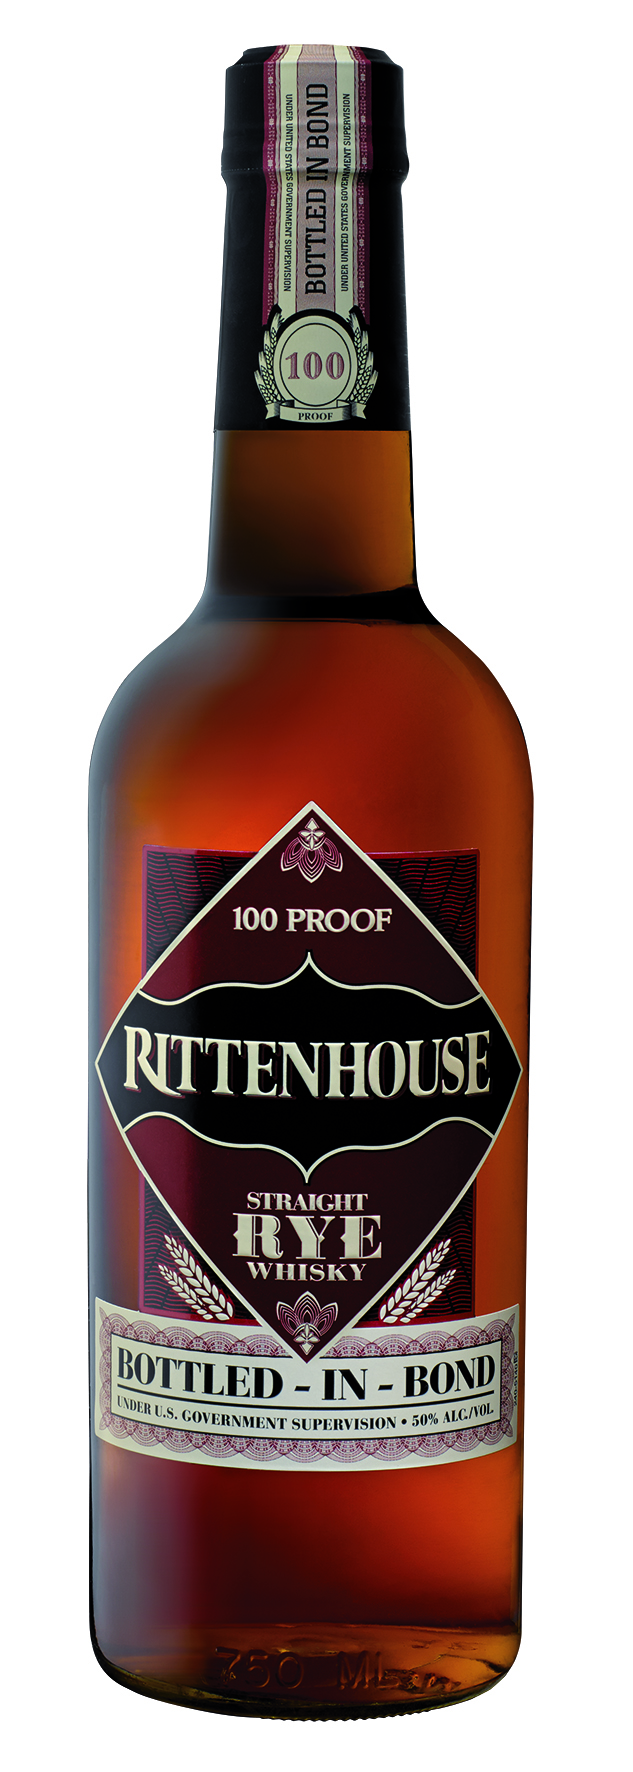 Rittenhouse Bottled-In-Bond Straight Rye Whisky